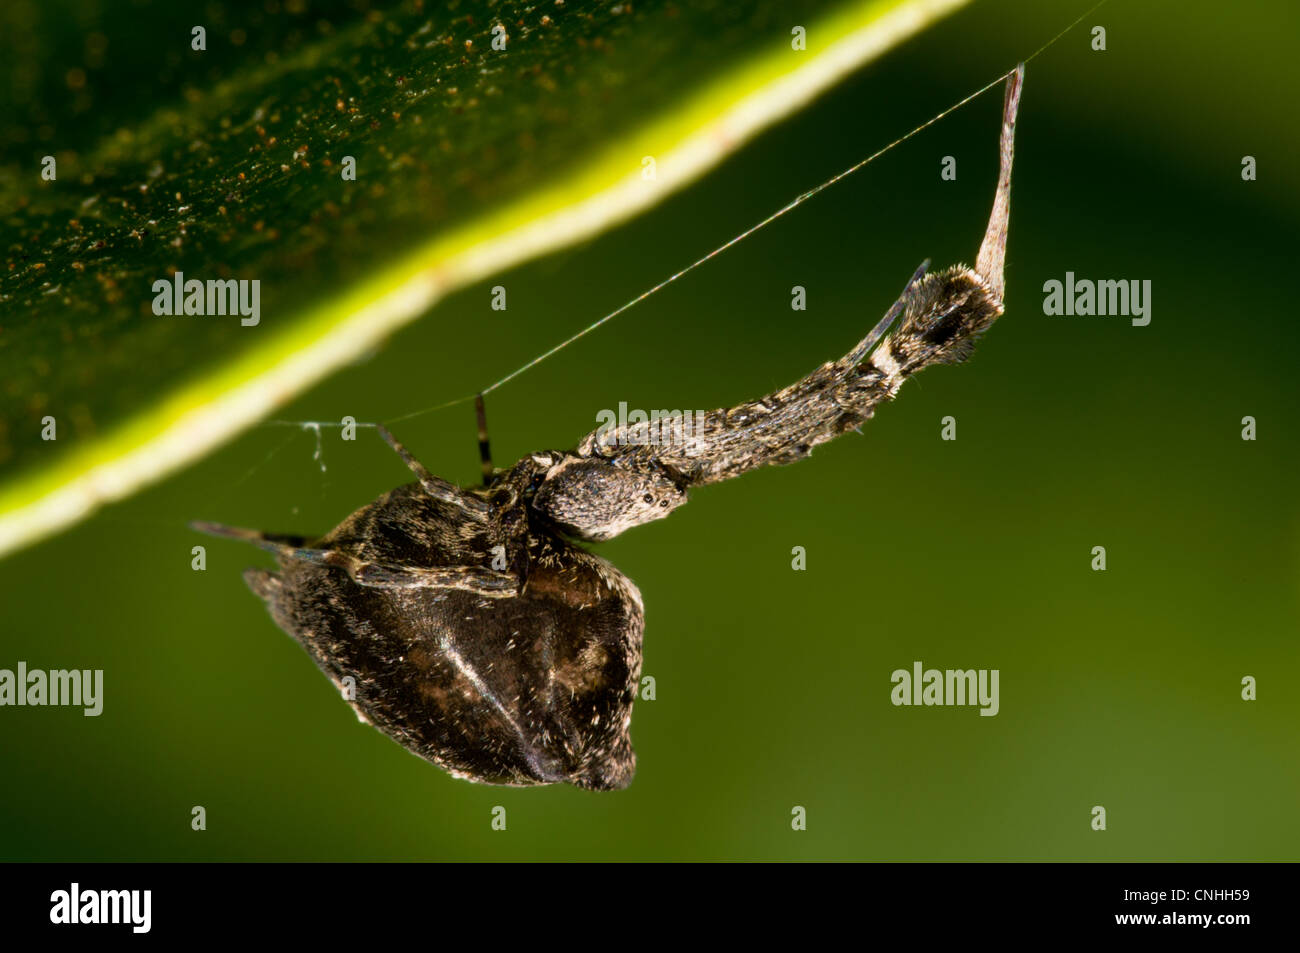 A feather-legged lace weaver, also known as the 'garden centre spider' (Uloborus plumipes) hanging upside - Stock Image